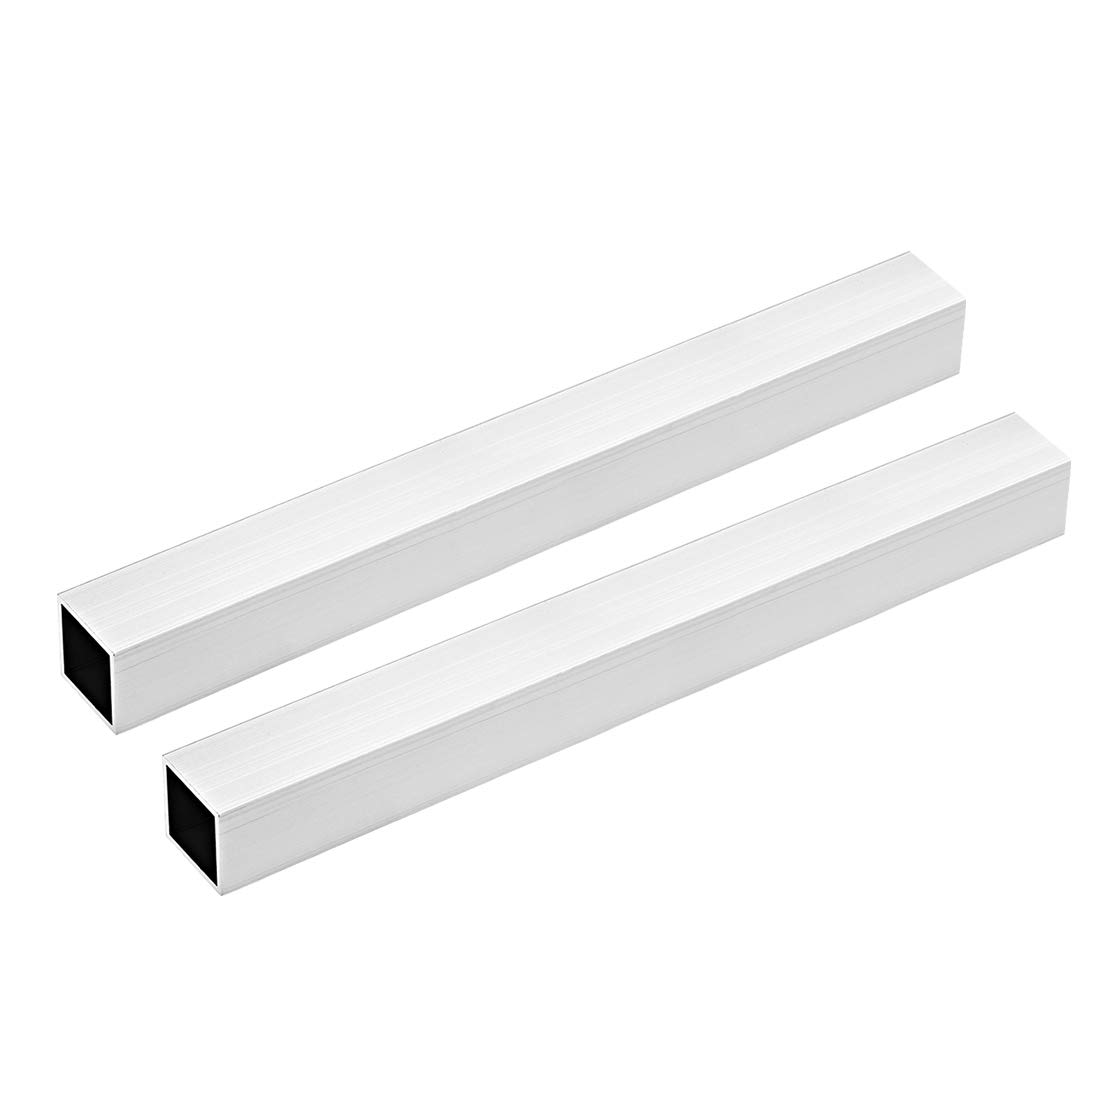 uxcell 6063 Aluminum Square Tube, 30mmx30mmx1mm Wall Thickness 300mm Length Seamless Straight Pipe Tubing 2 Pcs